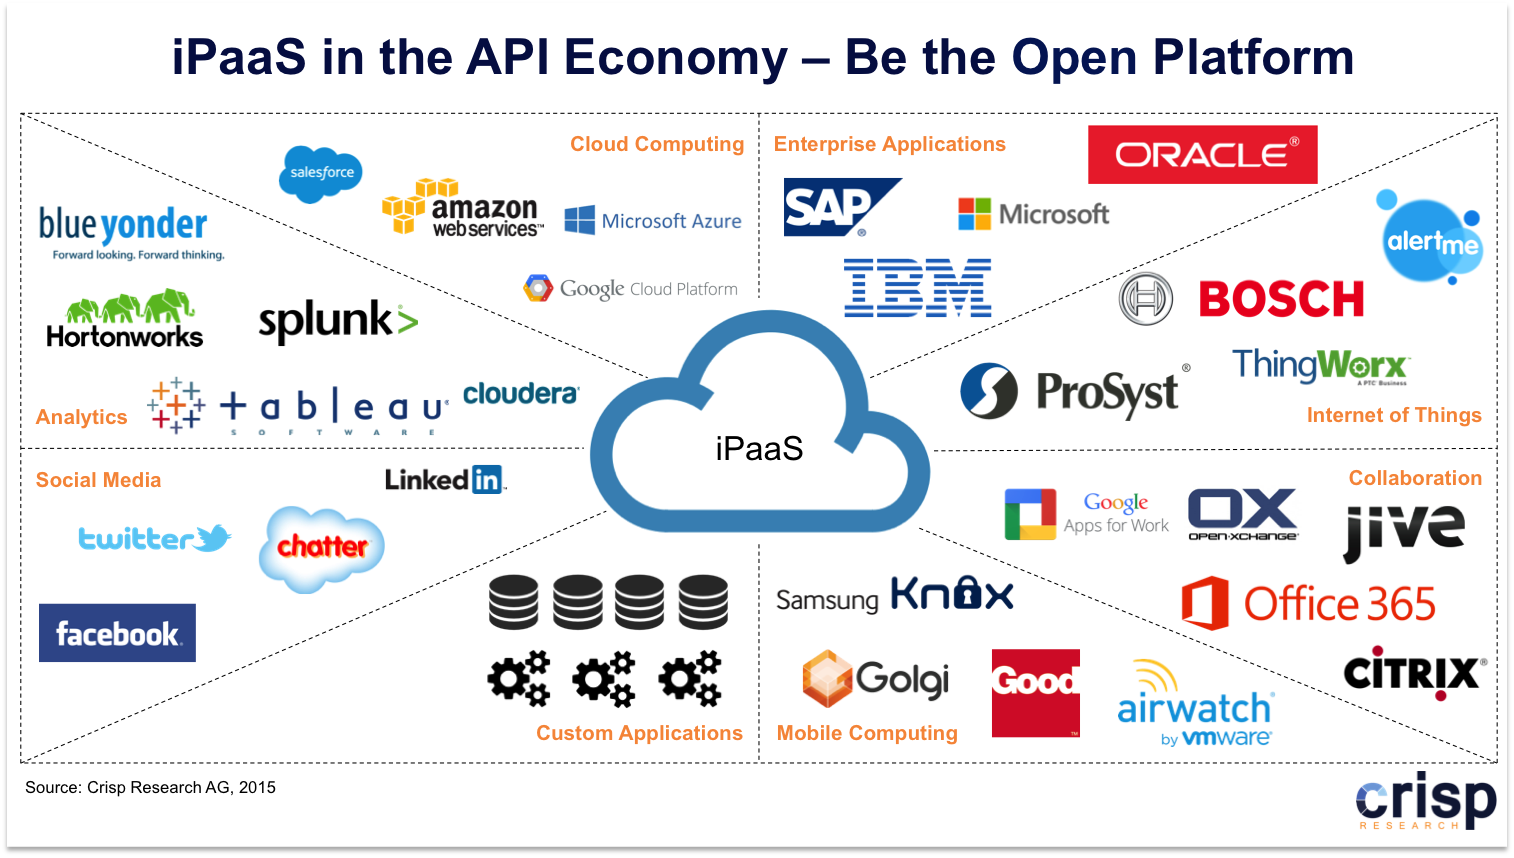 API Economy as a competitive factor:  iPaaS in the Age of the Internet of Things (IoT) and Multi-Cloud Environments